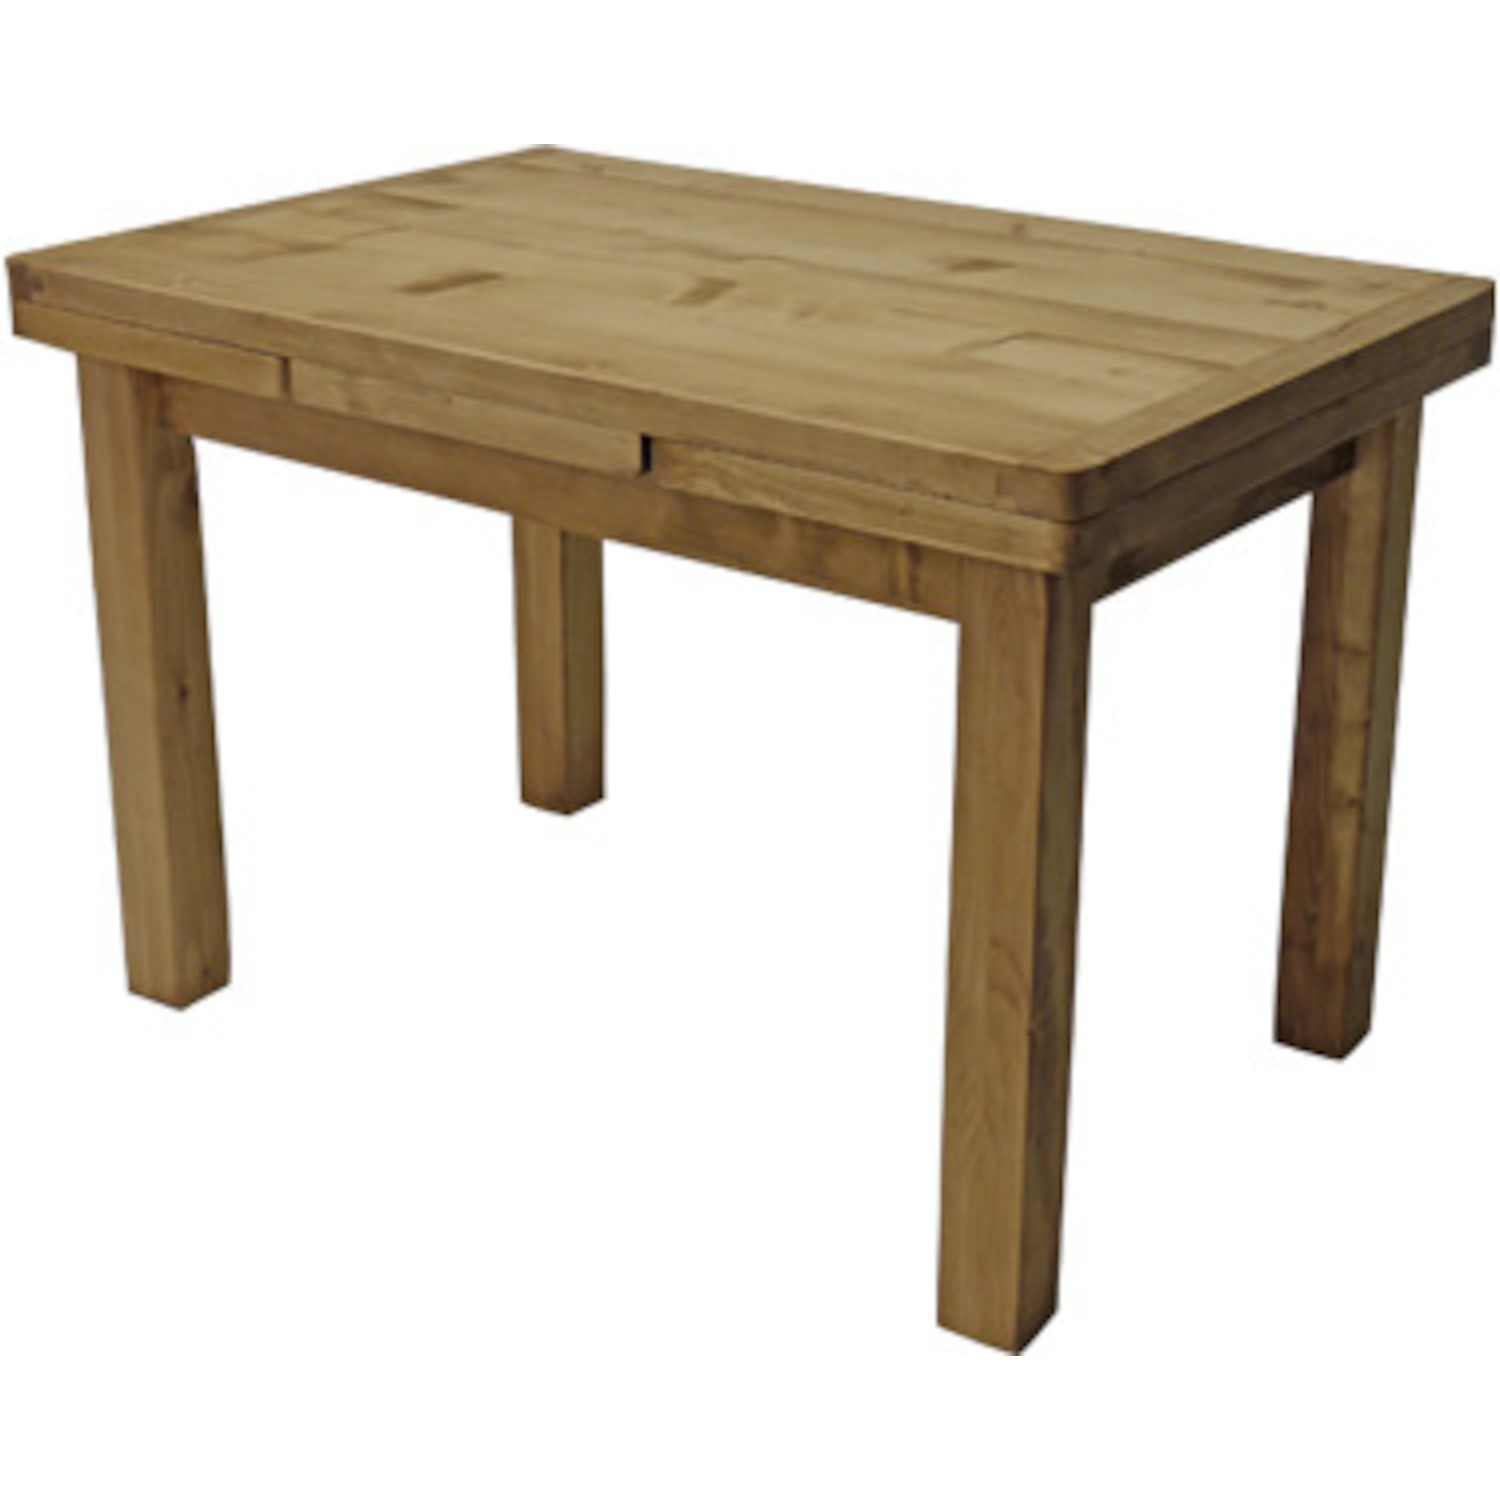 Table sejour avec rallonge maison design for Table sejour a rallonge